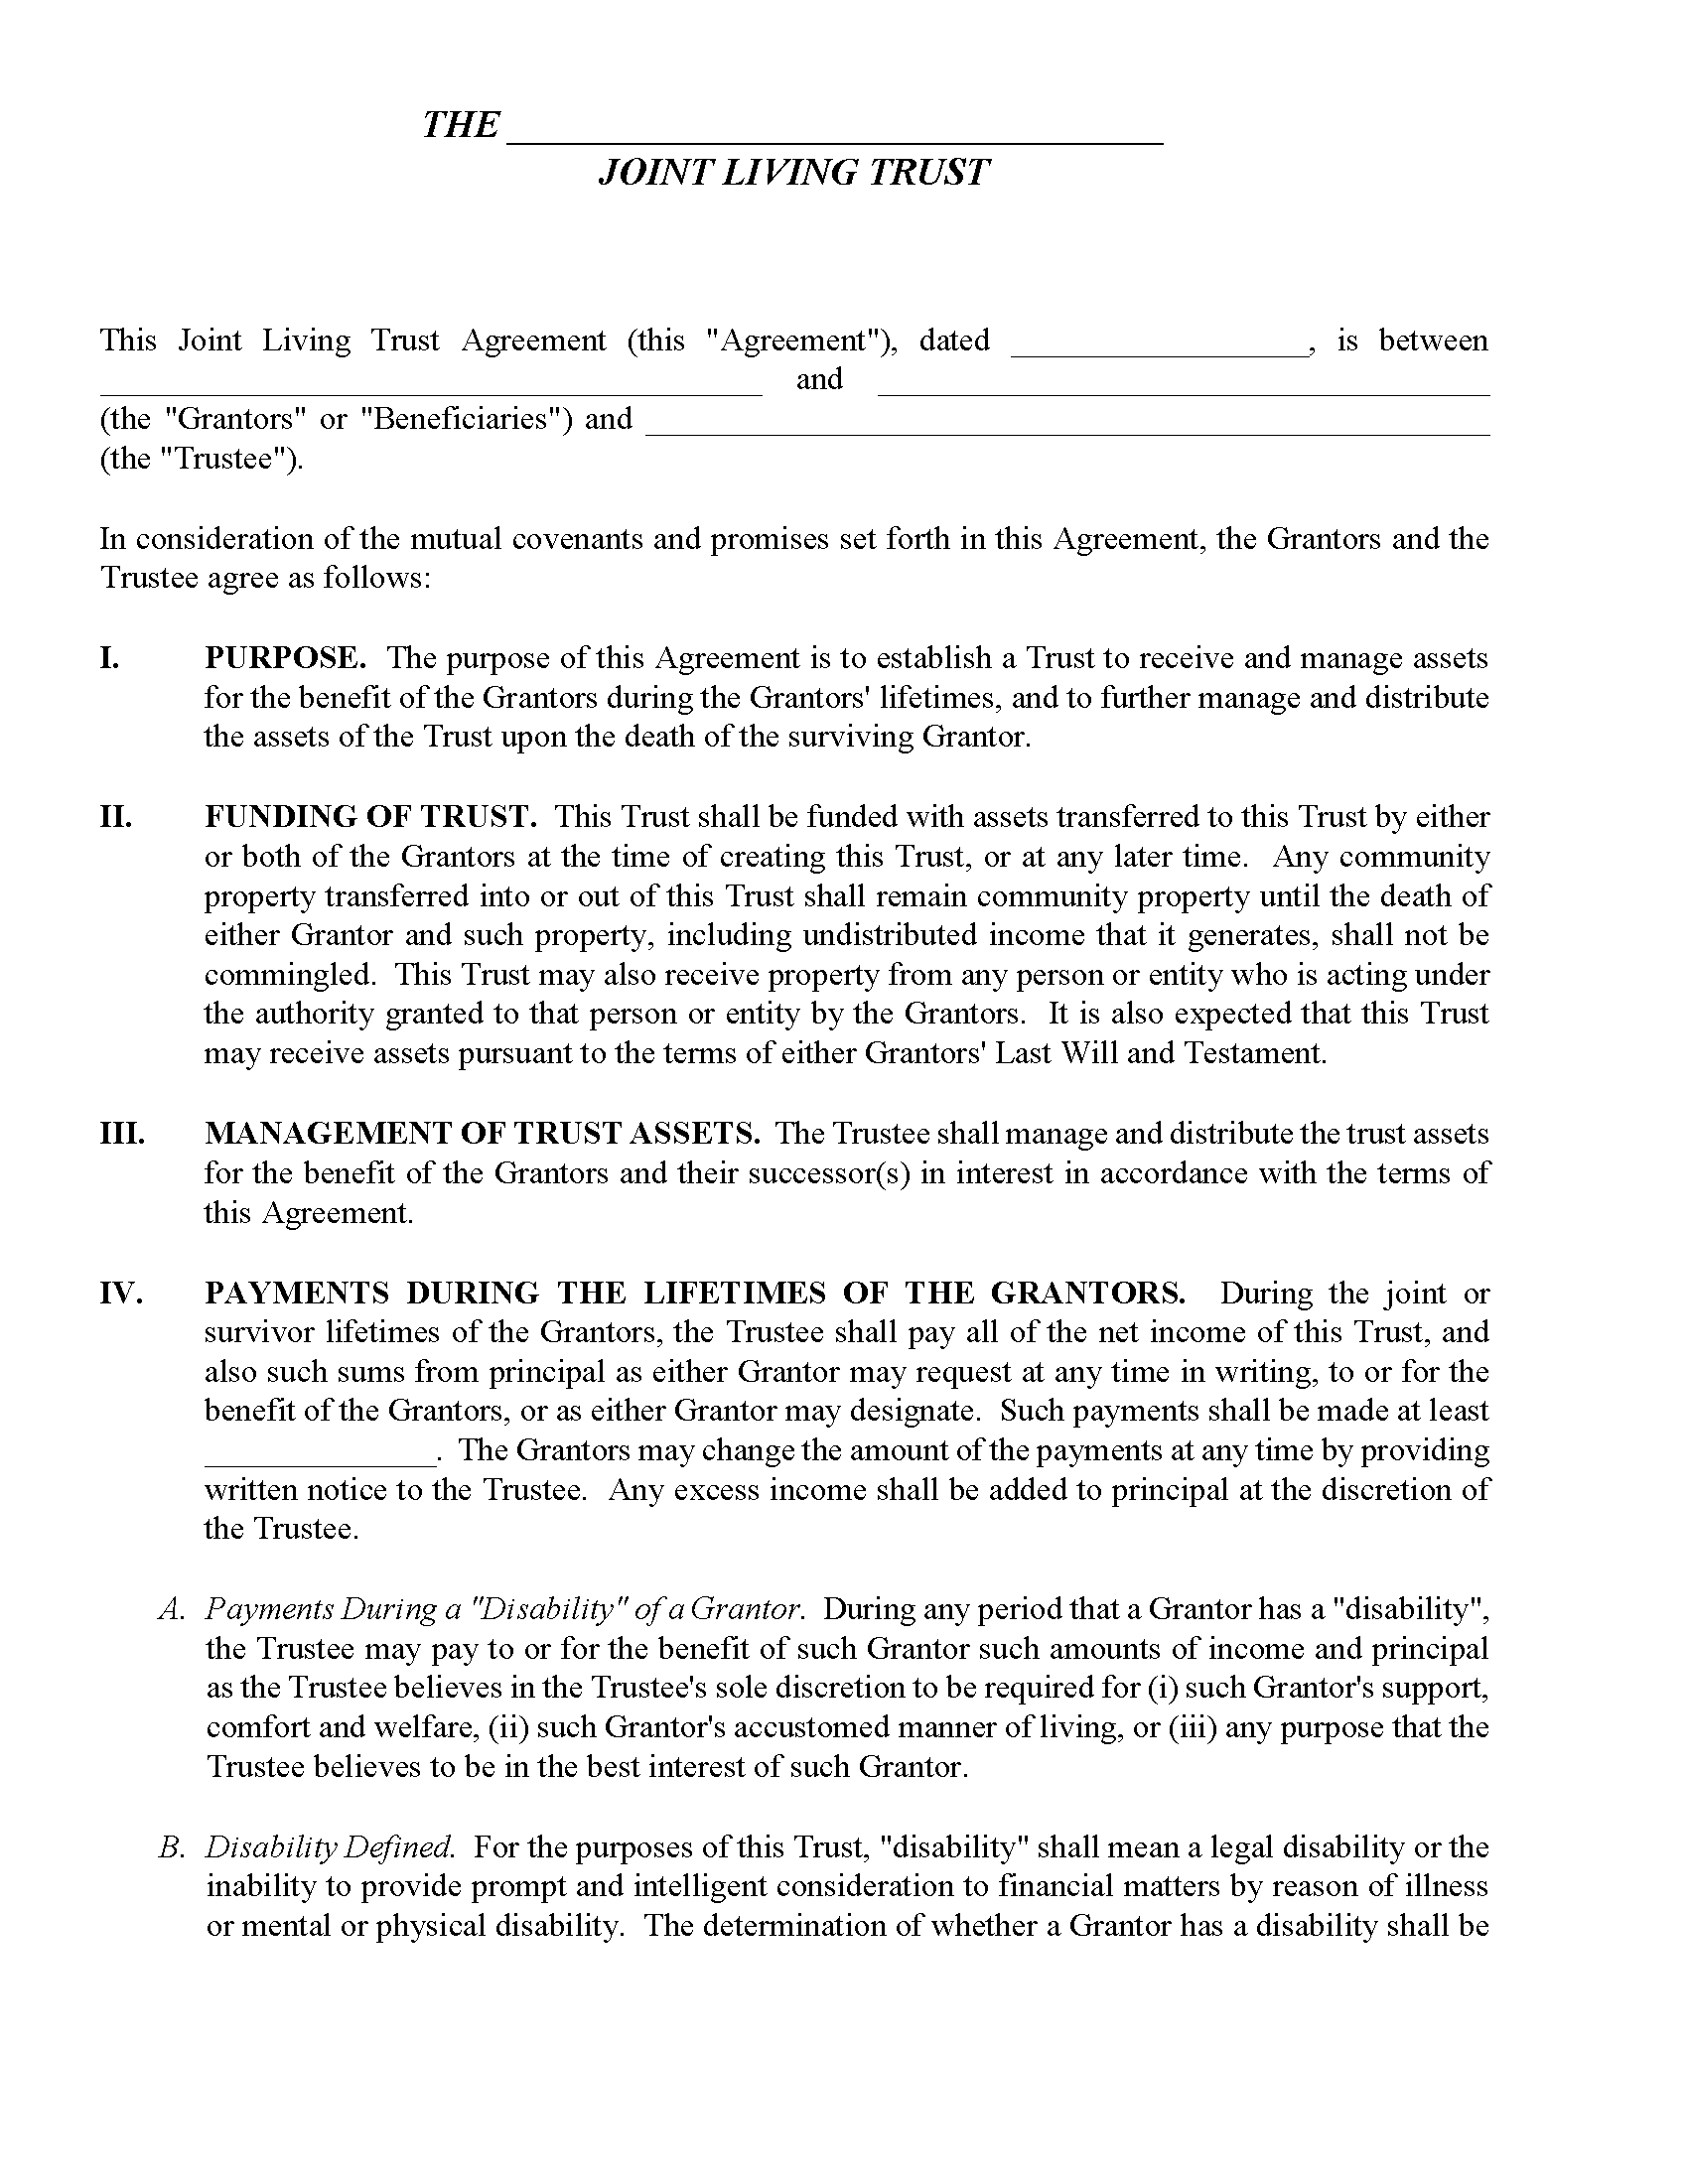 Maryland Joint Living Trust Form